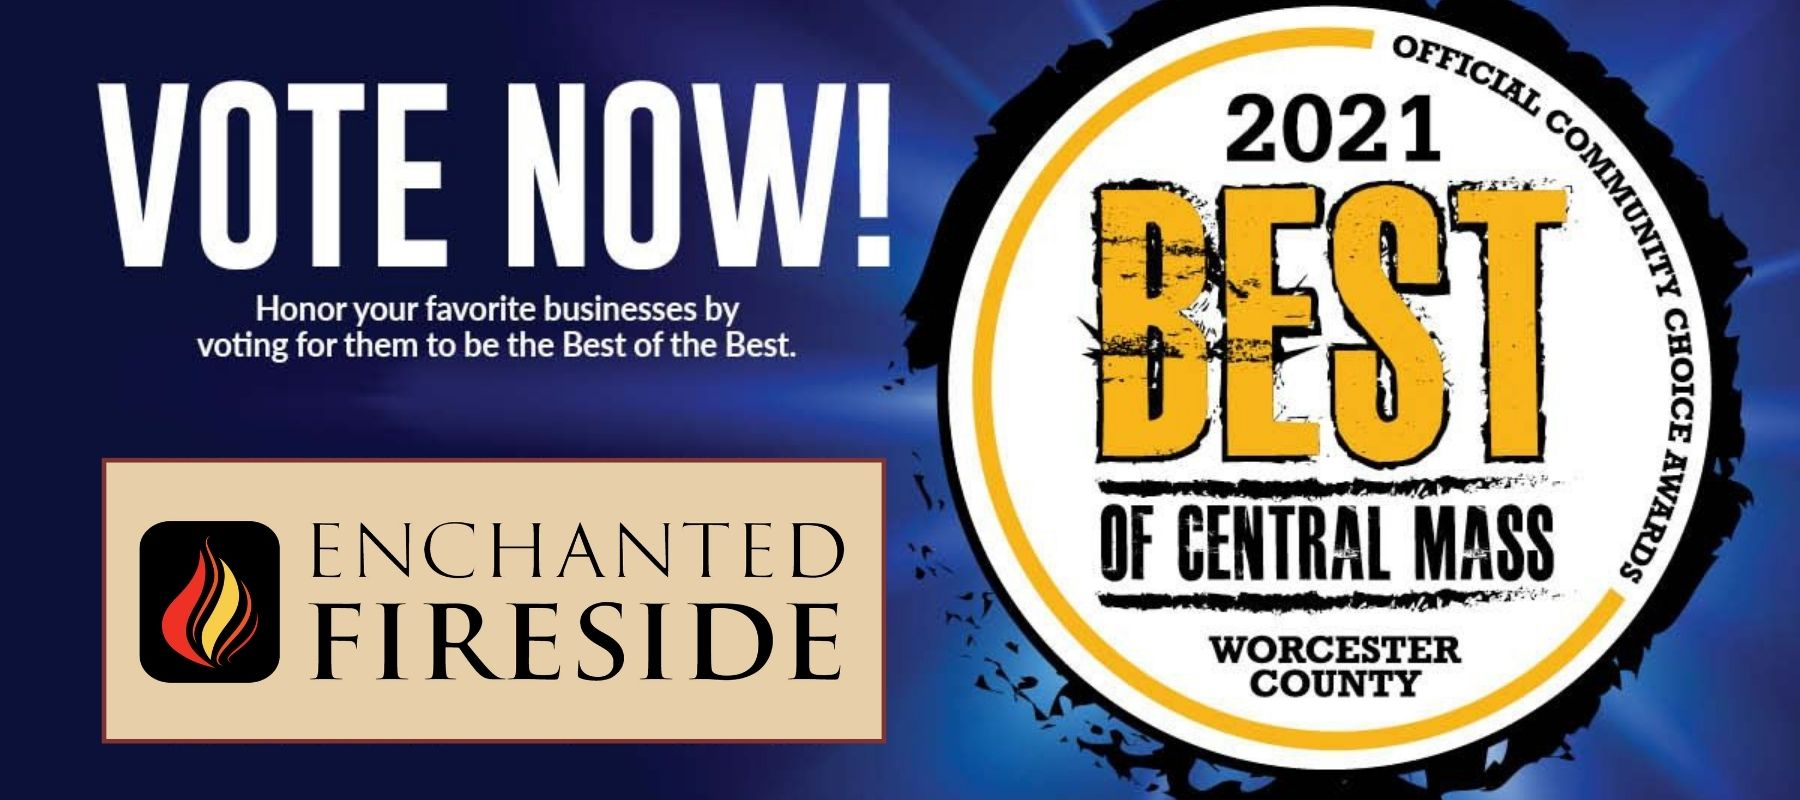 vote enchanted fireside for best of Central Mass 2021